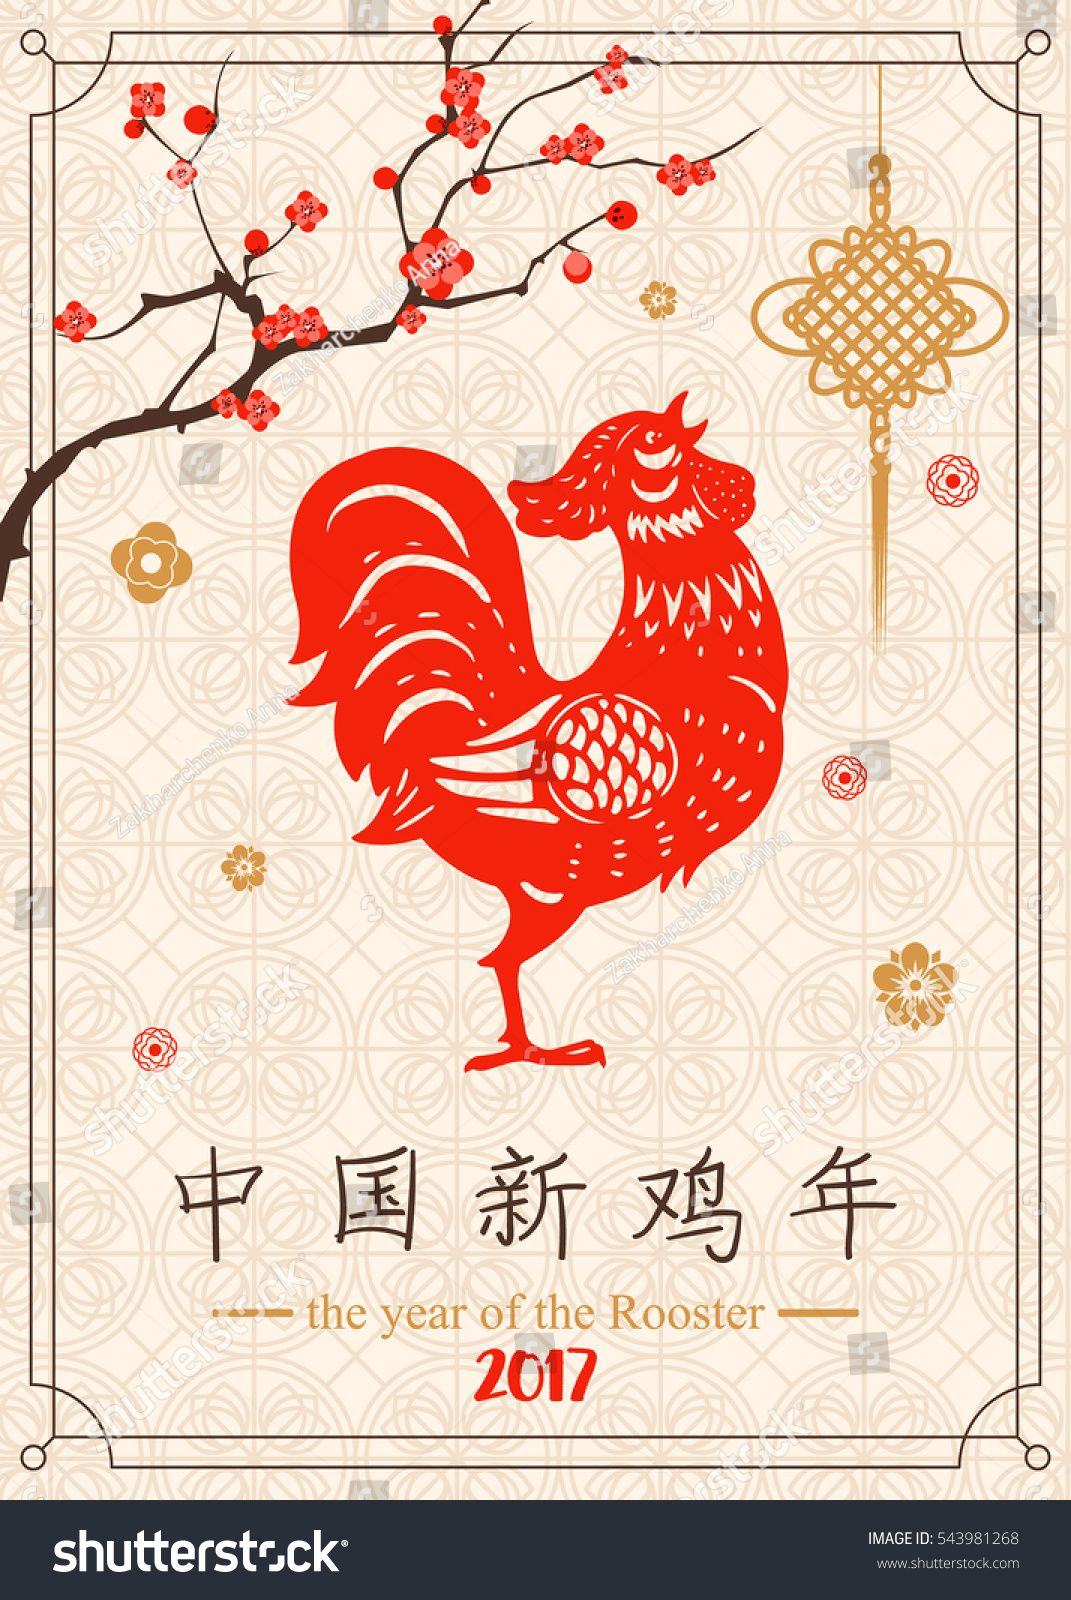 Chinese Calendar Illustration : Chinese new year background rooster flower stock vector